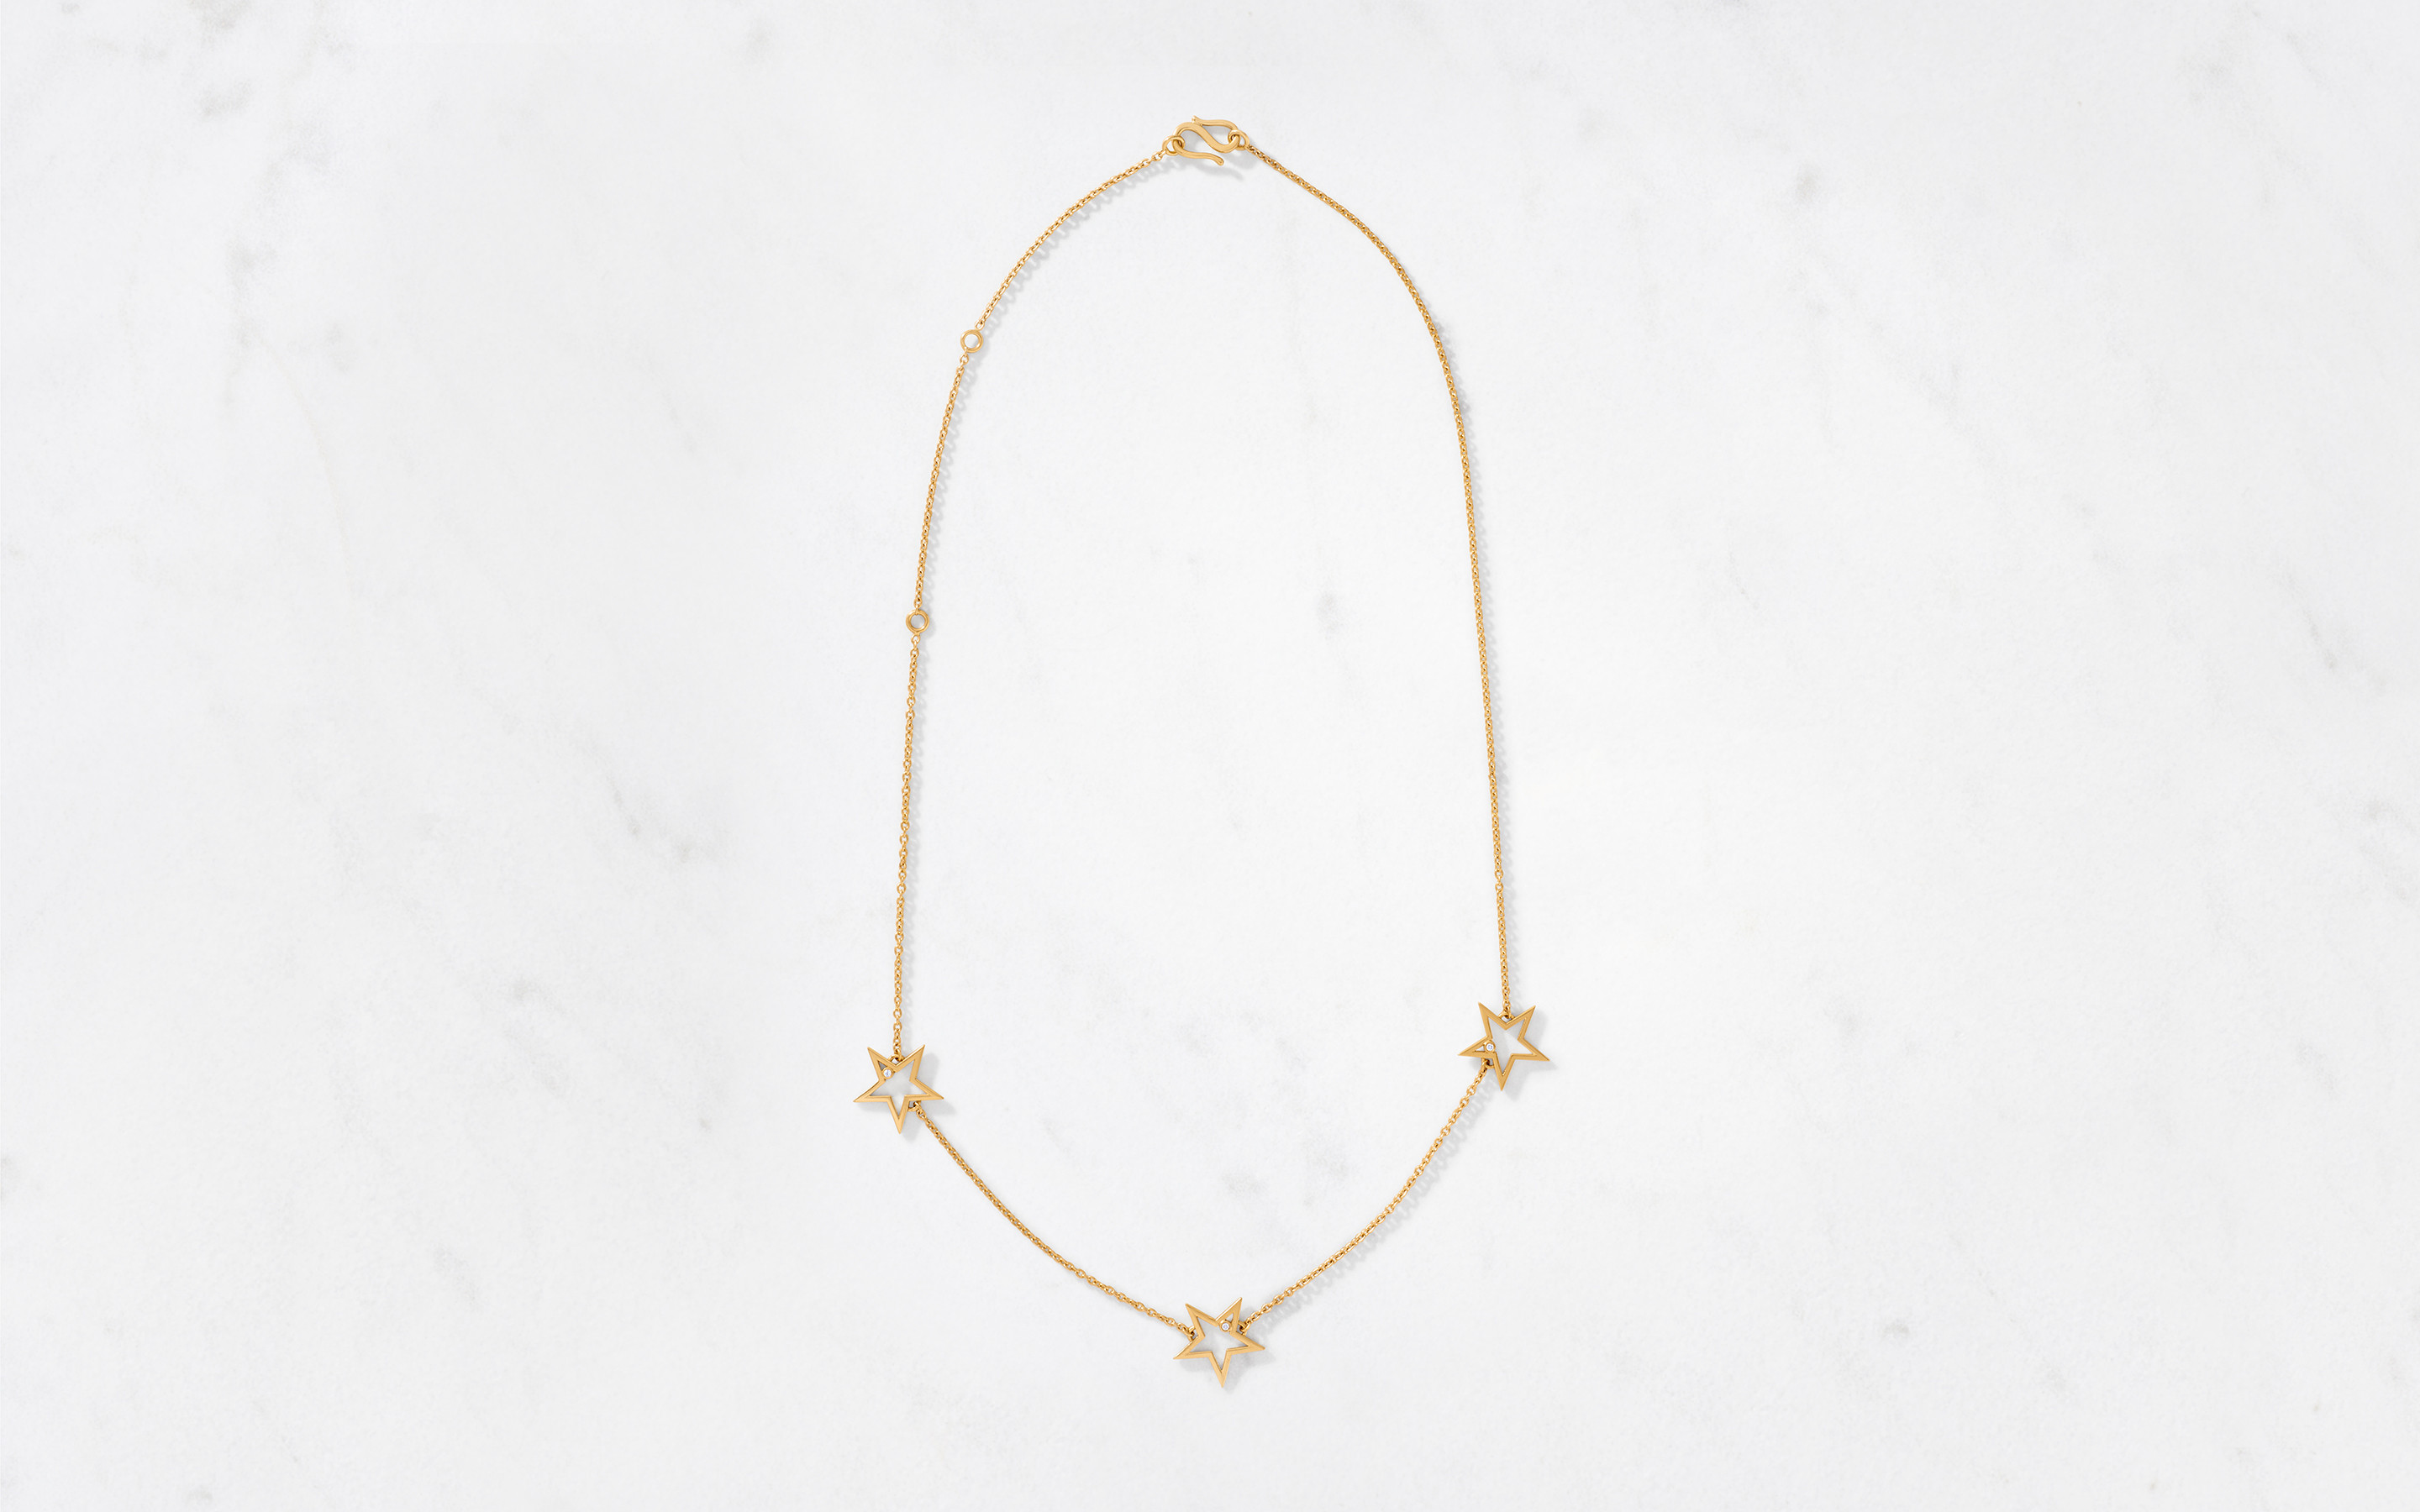 Stunning 22 karat necklace studded with sparkling stars on a spectacular gold chain